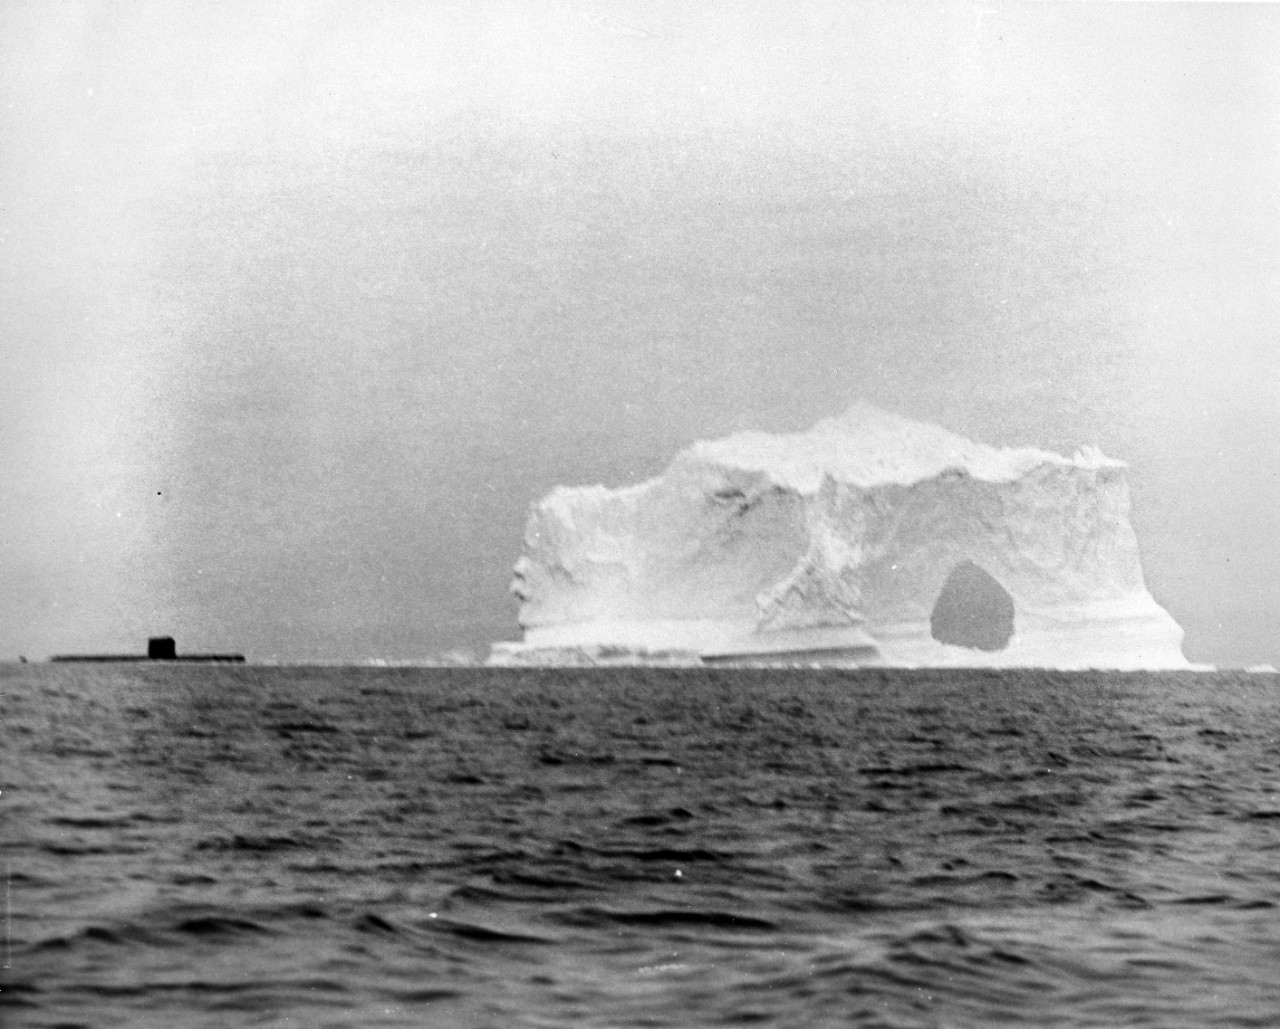 10 photographs of the SEADRAGON (SSN-584) on its first Arctic Cruise in the Fall of 1960. It was the first submarine to travel from the West to the East coast via the Northwest Passage and the first time photographs of the underside of ice formations had been taken. Donor: Admiral Robert L. DENNISON, USN (RET.), ACC # 79-003. Photos from the USN 1050047-1050057 series.